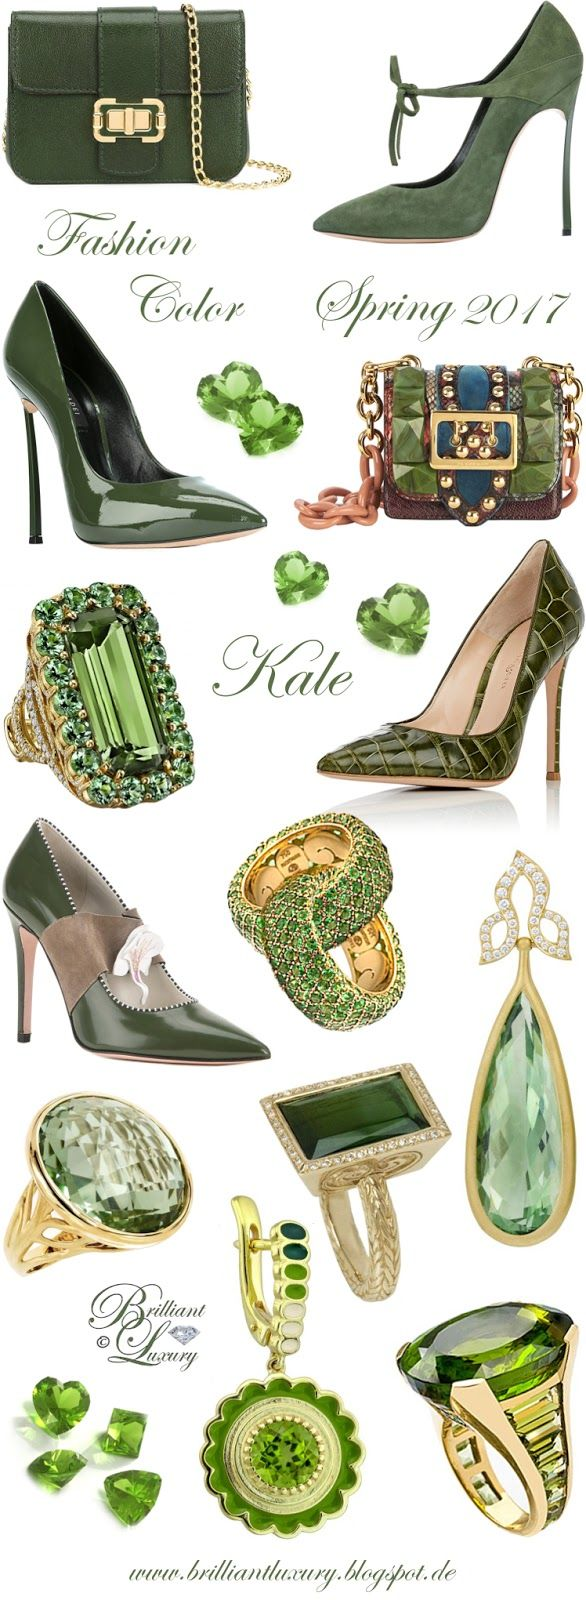 Brilliant Luxury by Emmy DE ♦ Fashion Color Spring 2017 ~ kale